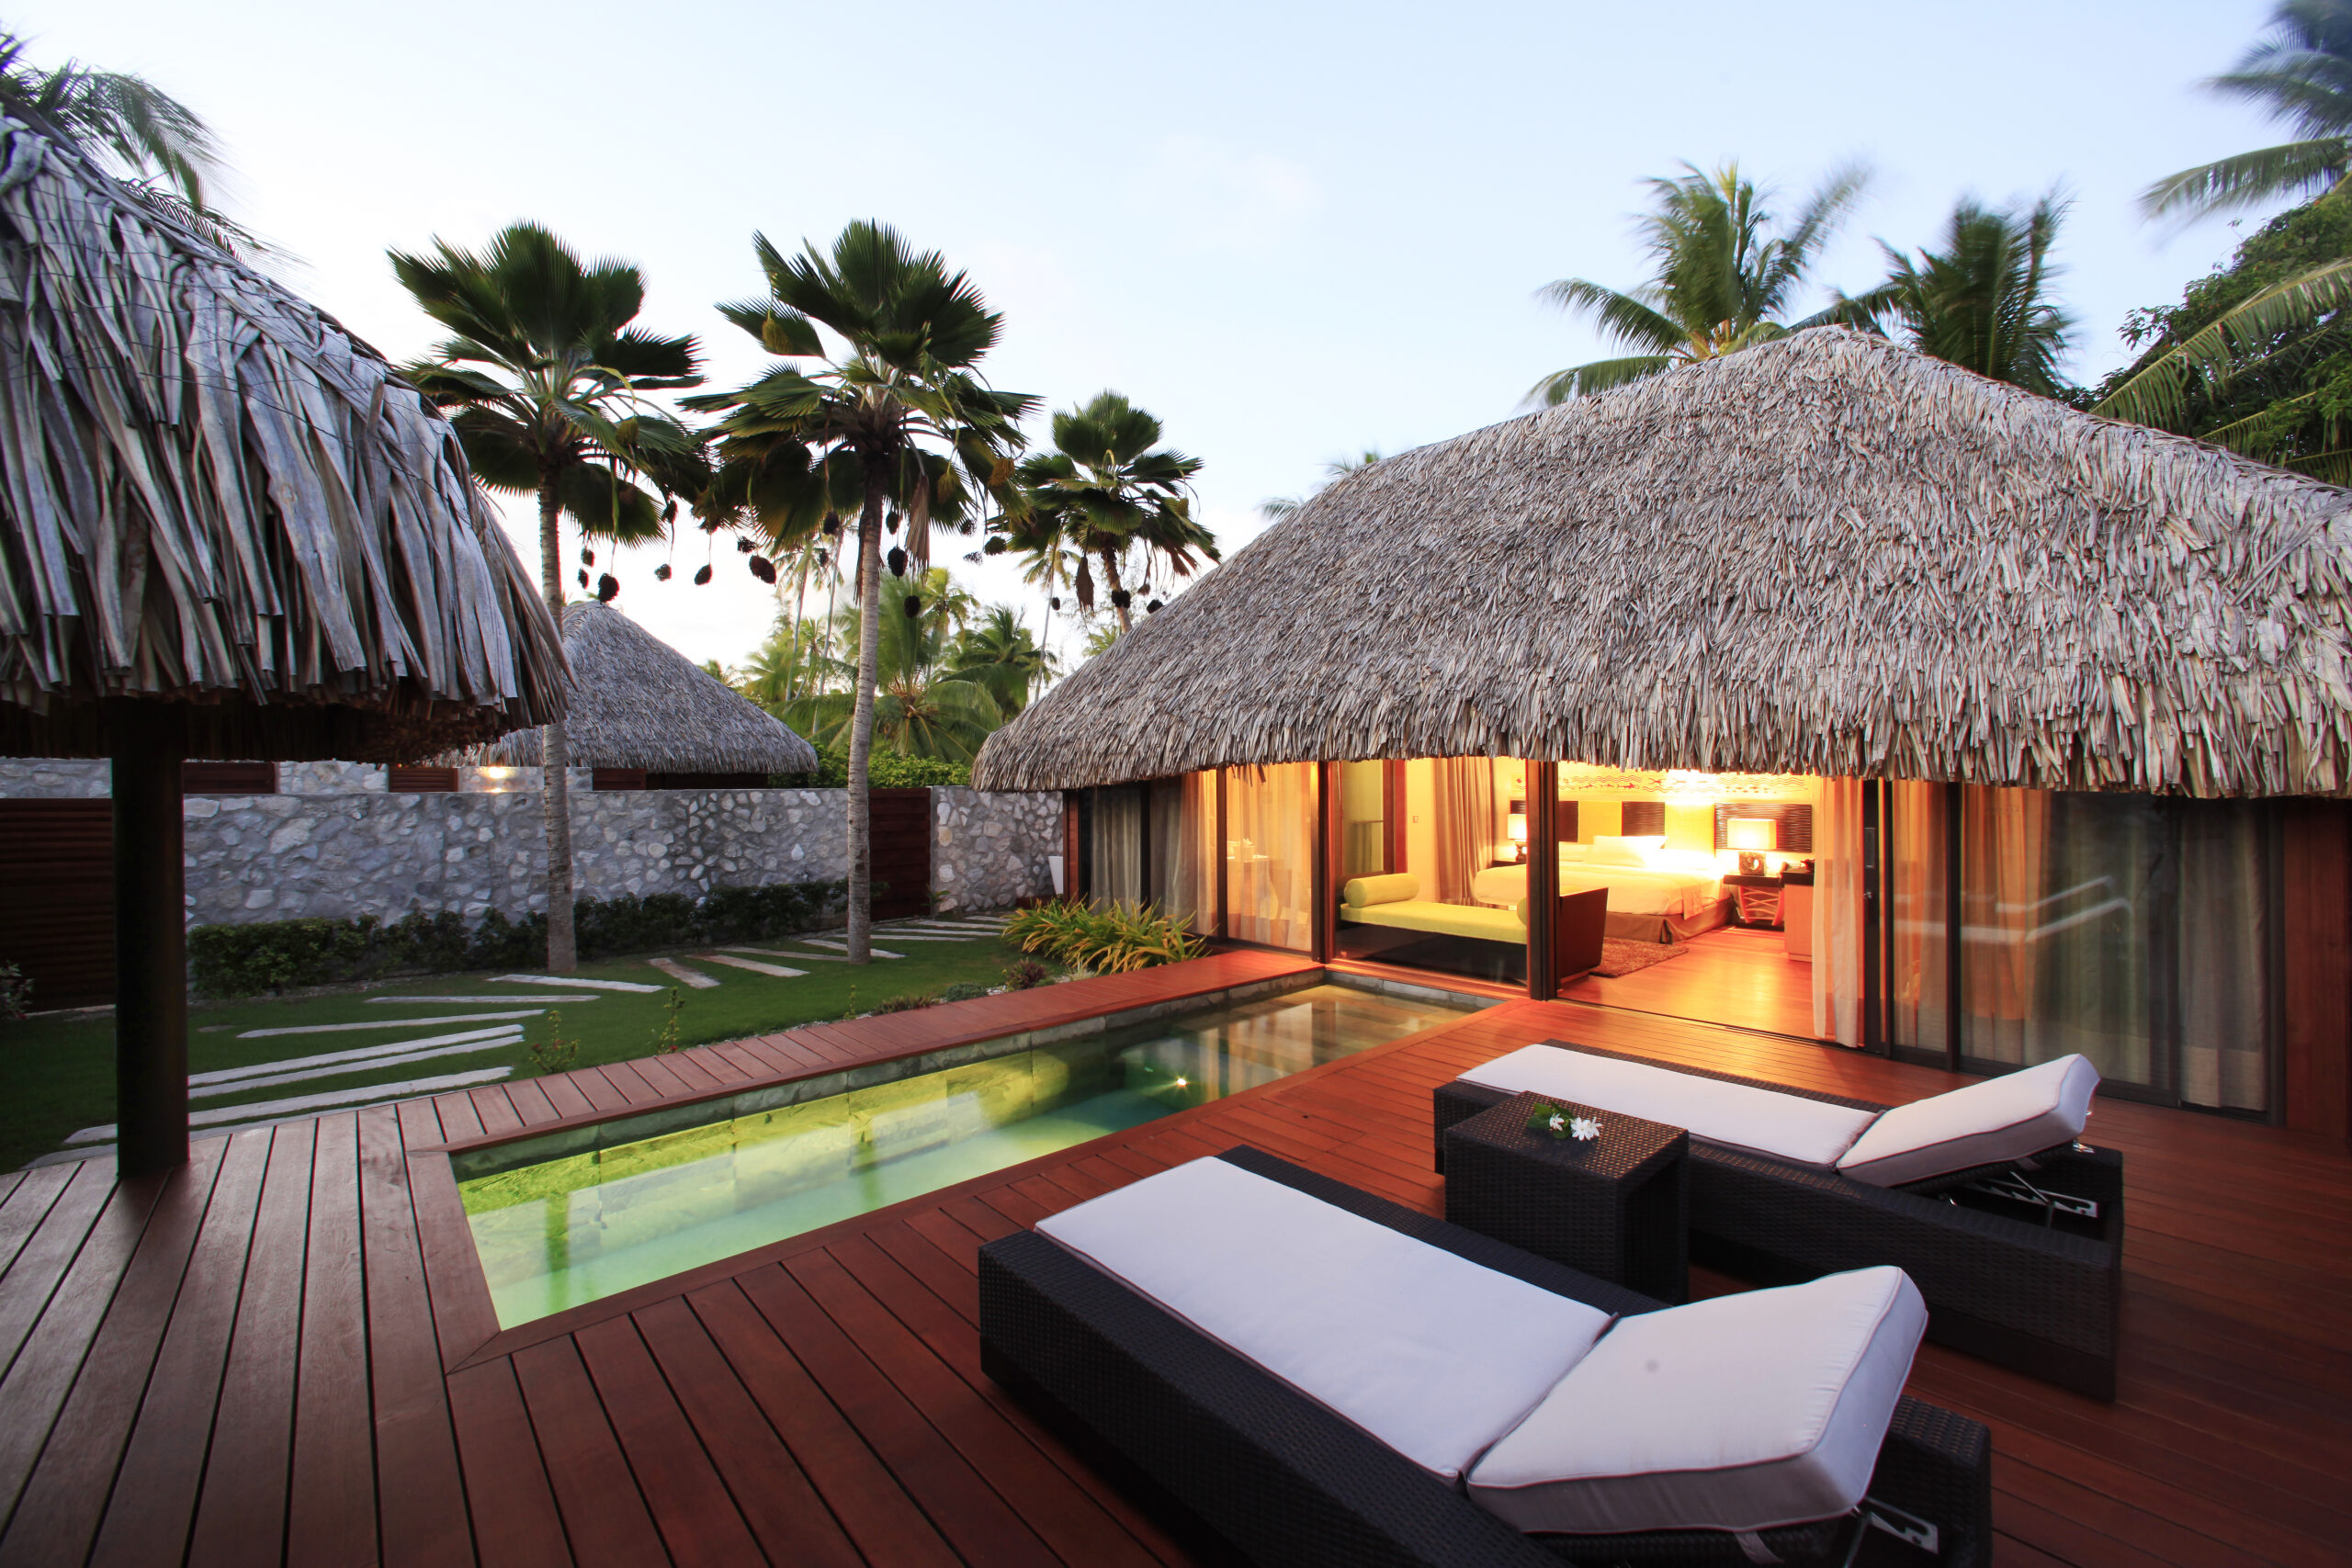 https://tahititourisme.com/wp-content/uploads/2021/09/Villa-with-Pool-2-scaled.jpg